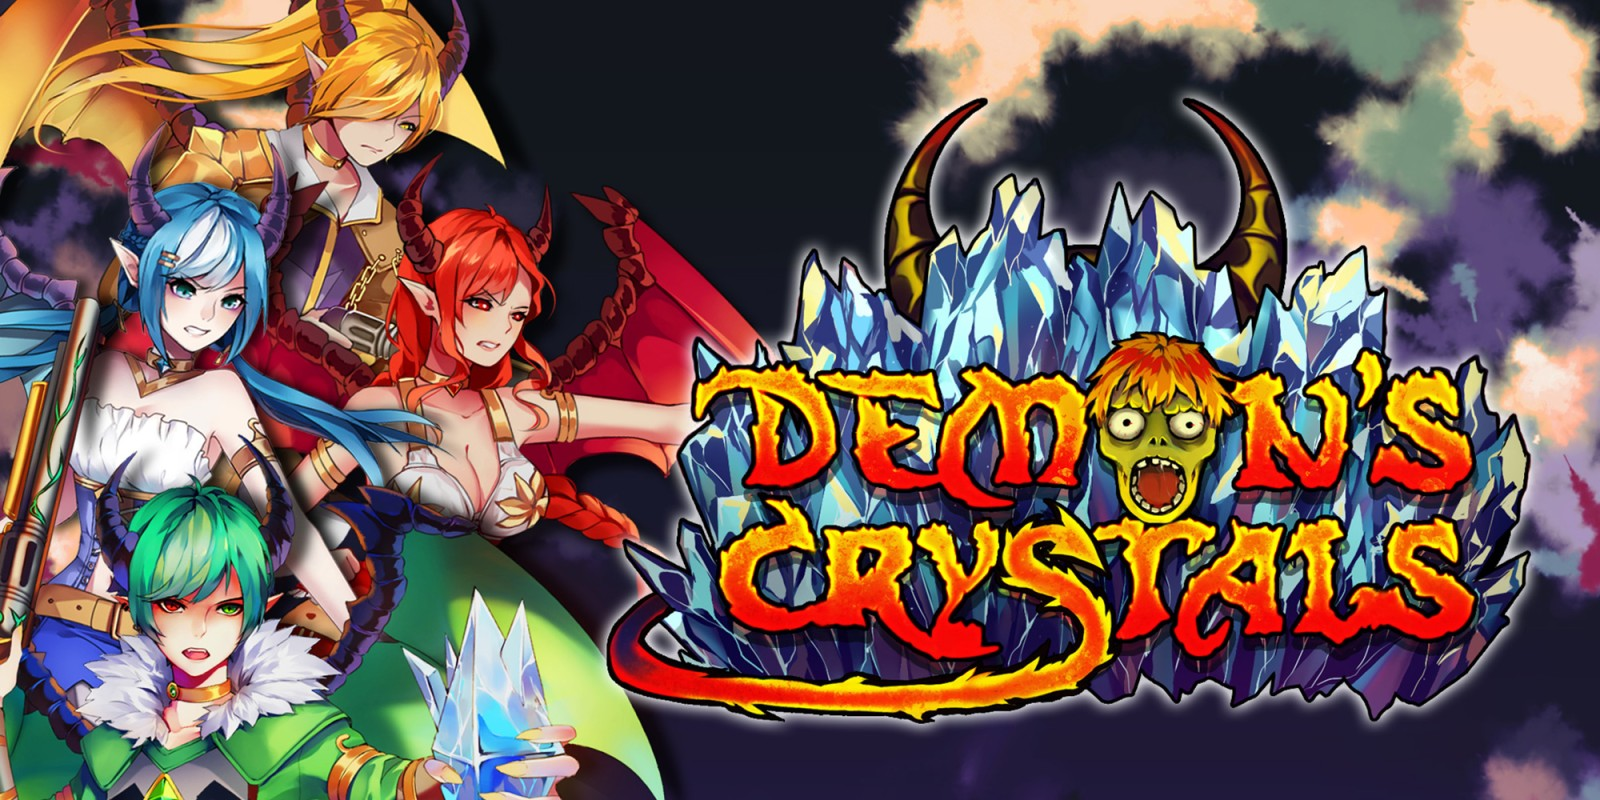 Demon's Crystals